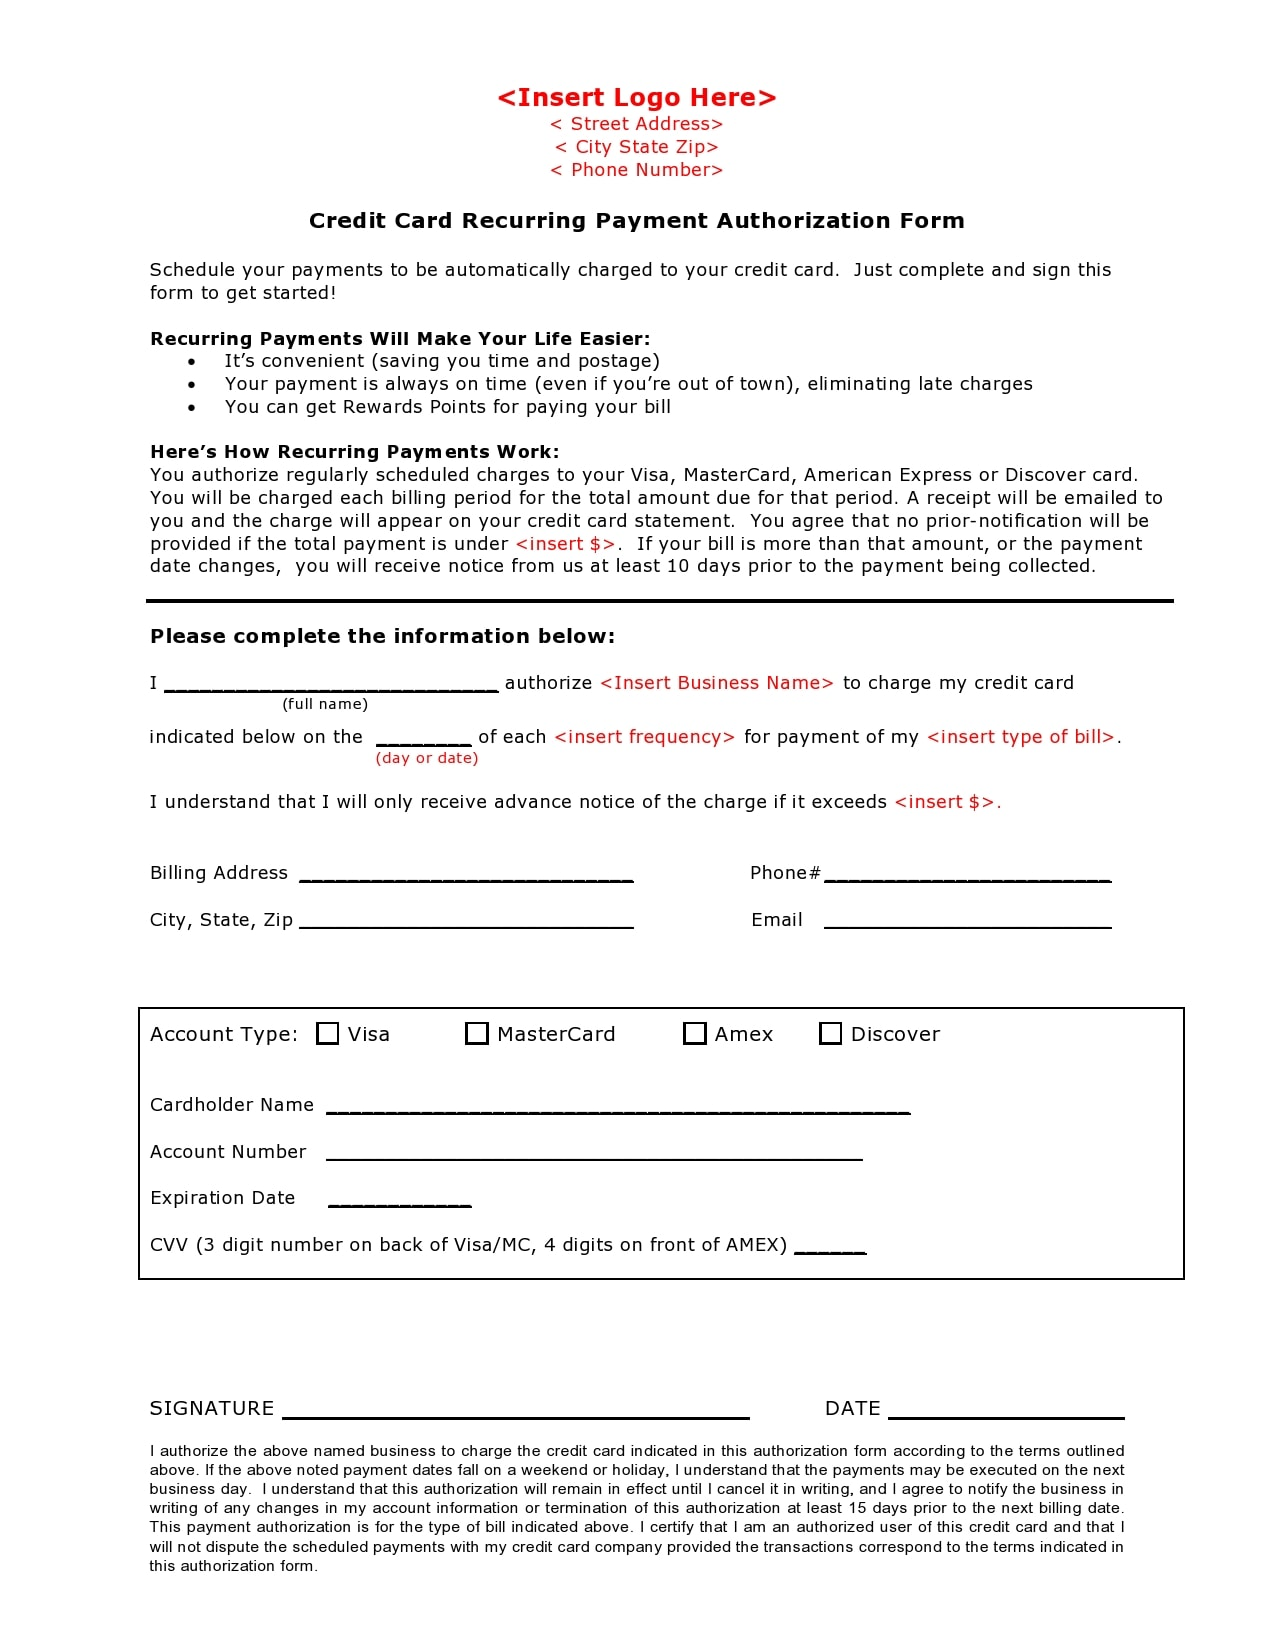 Recurring credit/debit card payment authorization form i authorize the oregon judicial department (ojd) to make recurring charges to my credit/debit card. 28 Best Credit Card Authorization Form Templates